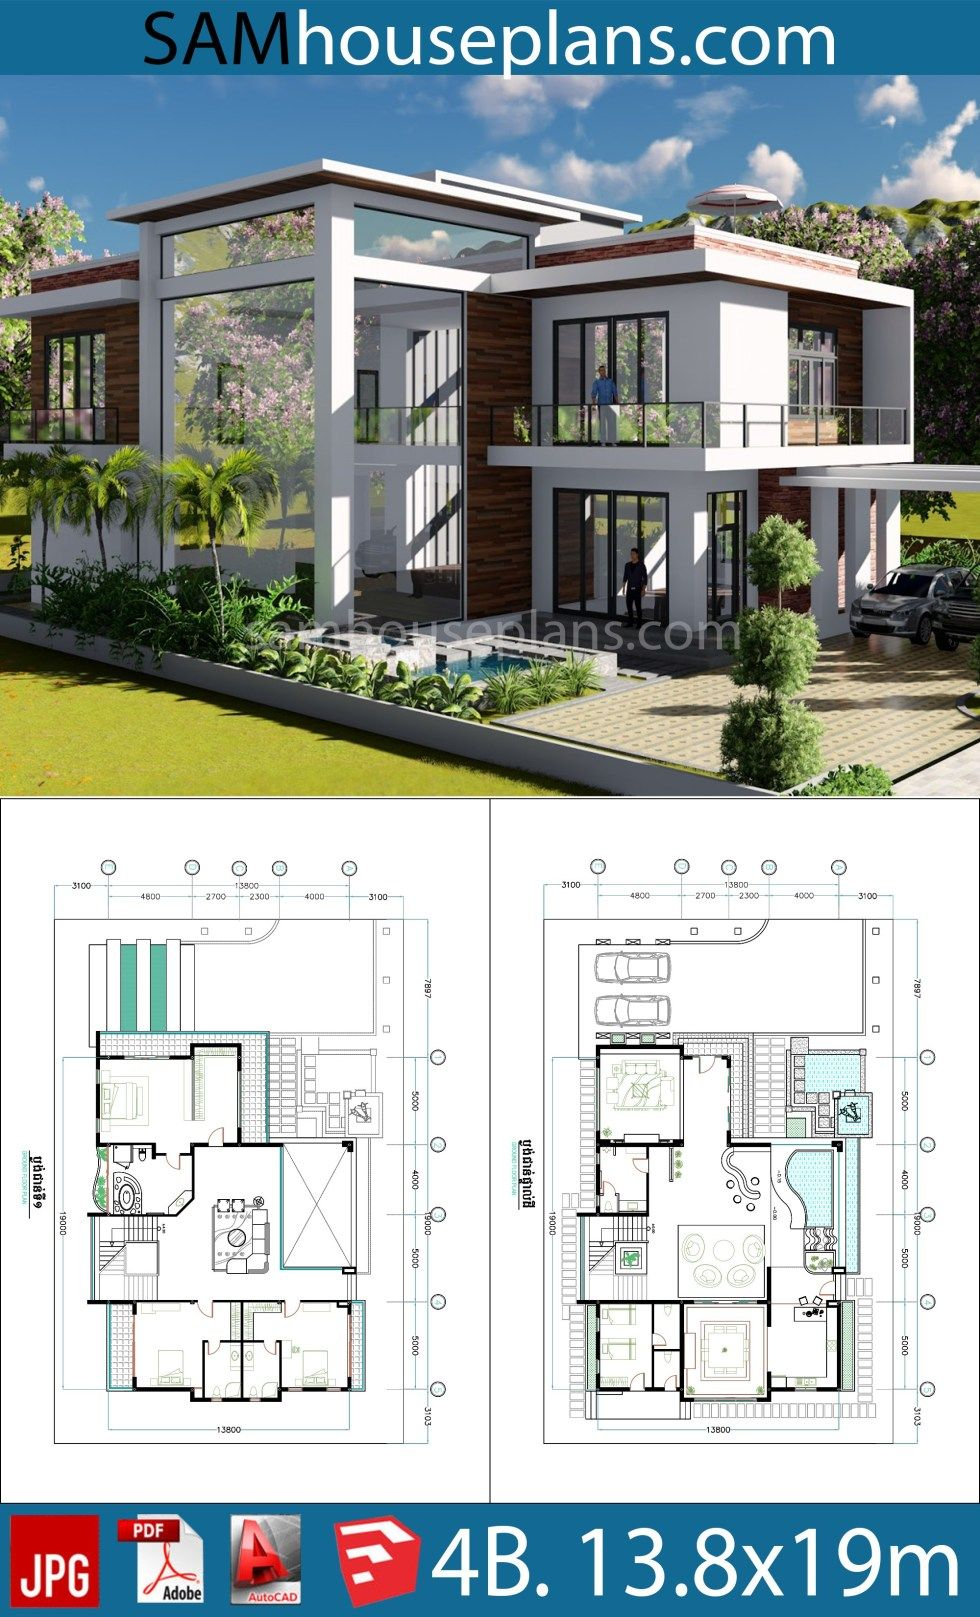 4 Bedroom Home Plan 13 8x19m Sam House Plans Contemporary House Plans Beach House Plans House Layout Plans